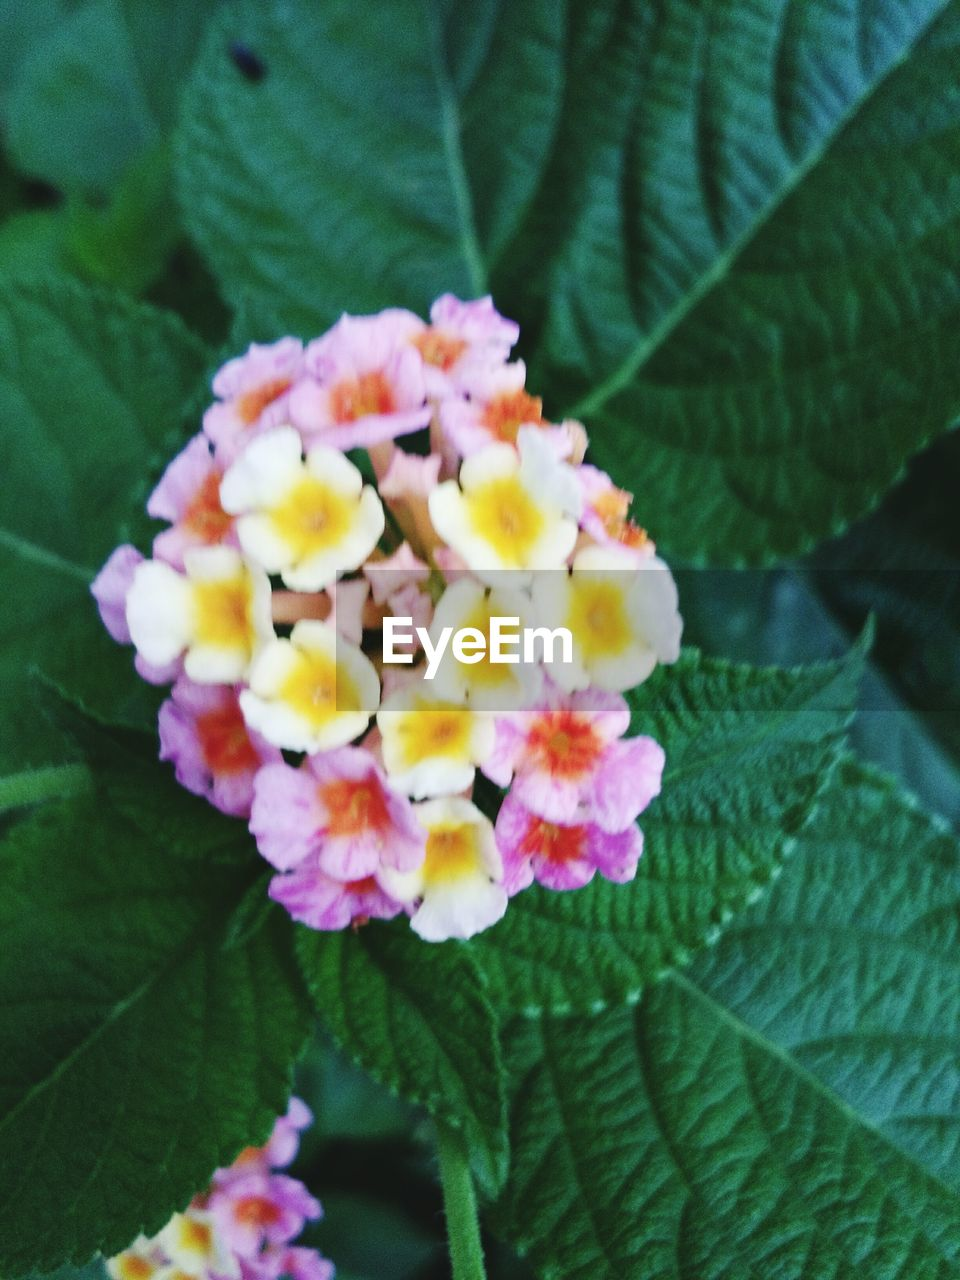 flower, leaf, beauty in nature, fragility, freshness, nature, lantana camara, growth, petal, plant, flower head, day, outdoors, no people, close-up, blooming